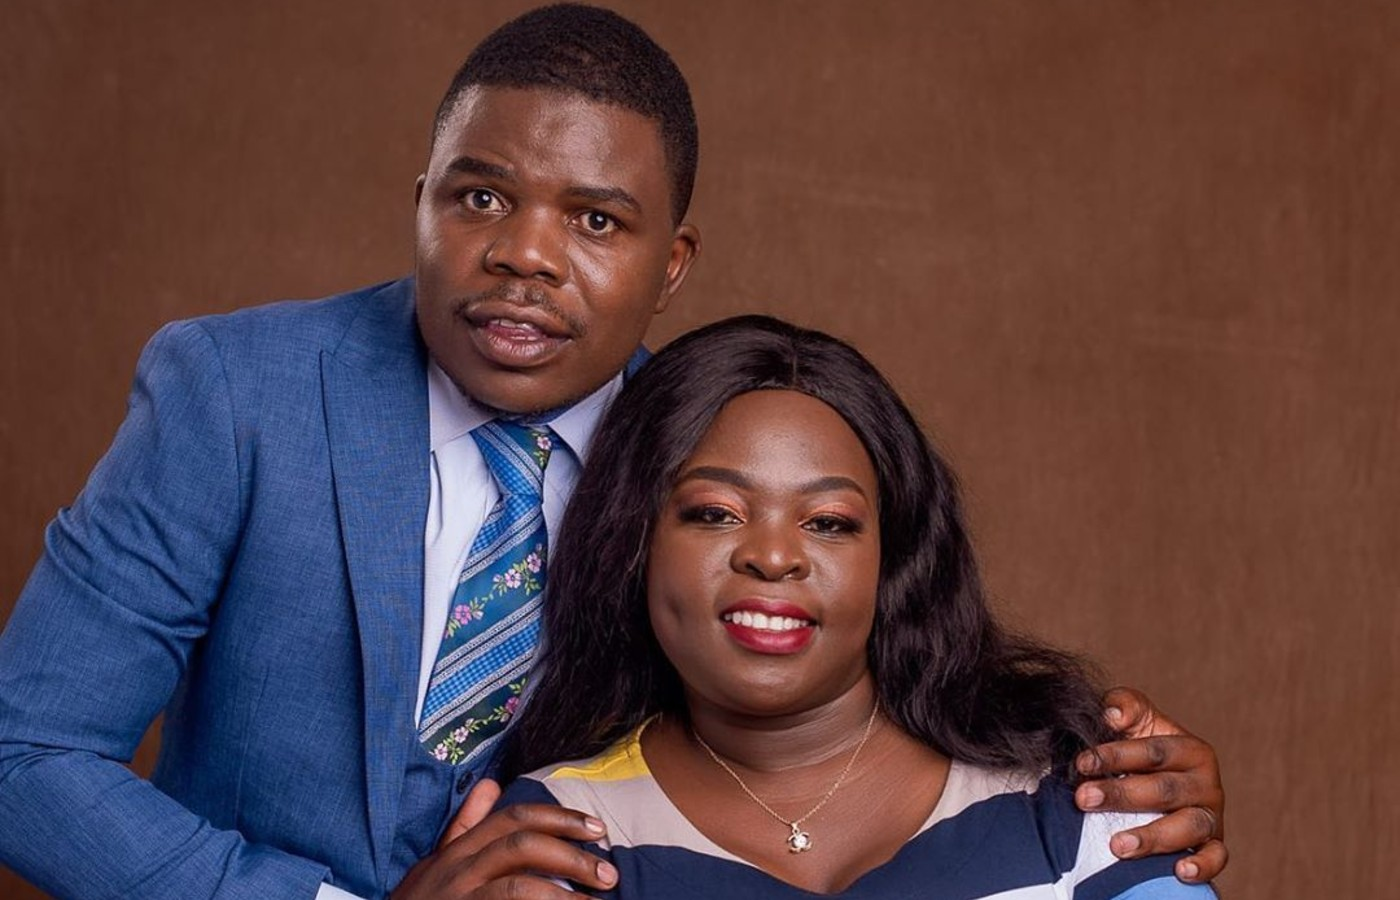 Comic Pastor, from Cattle Herder to Influencer!